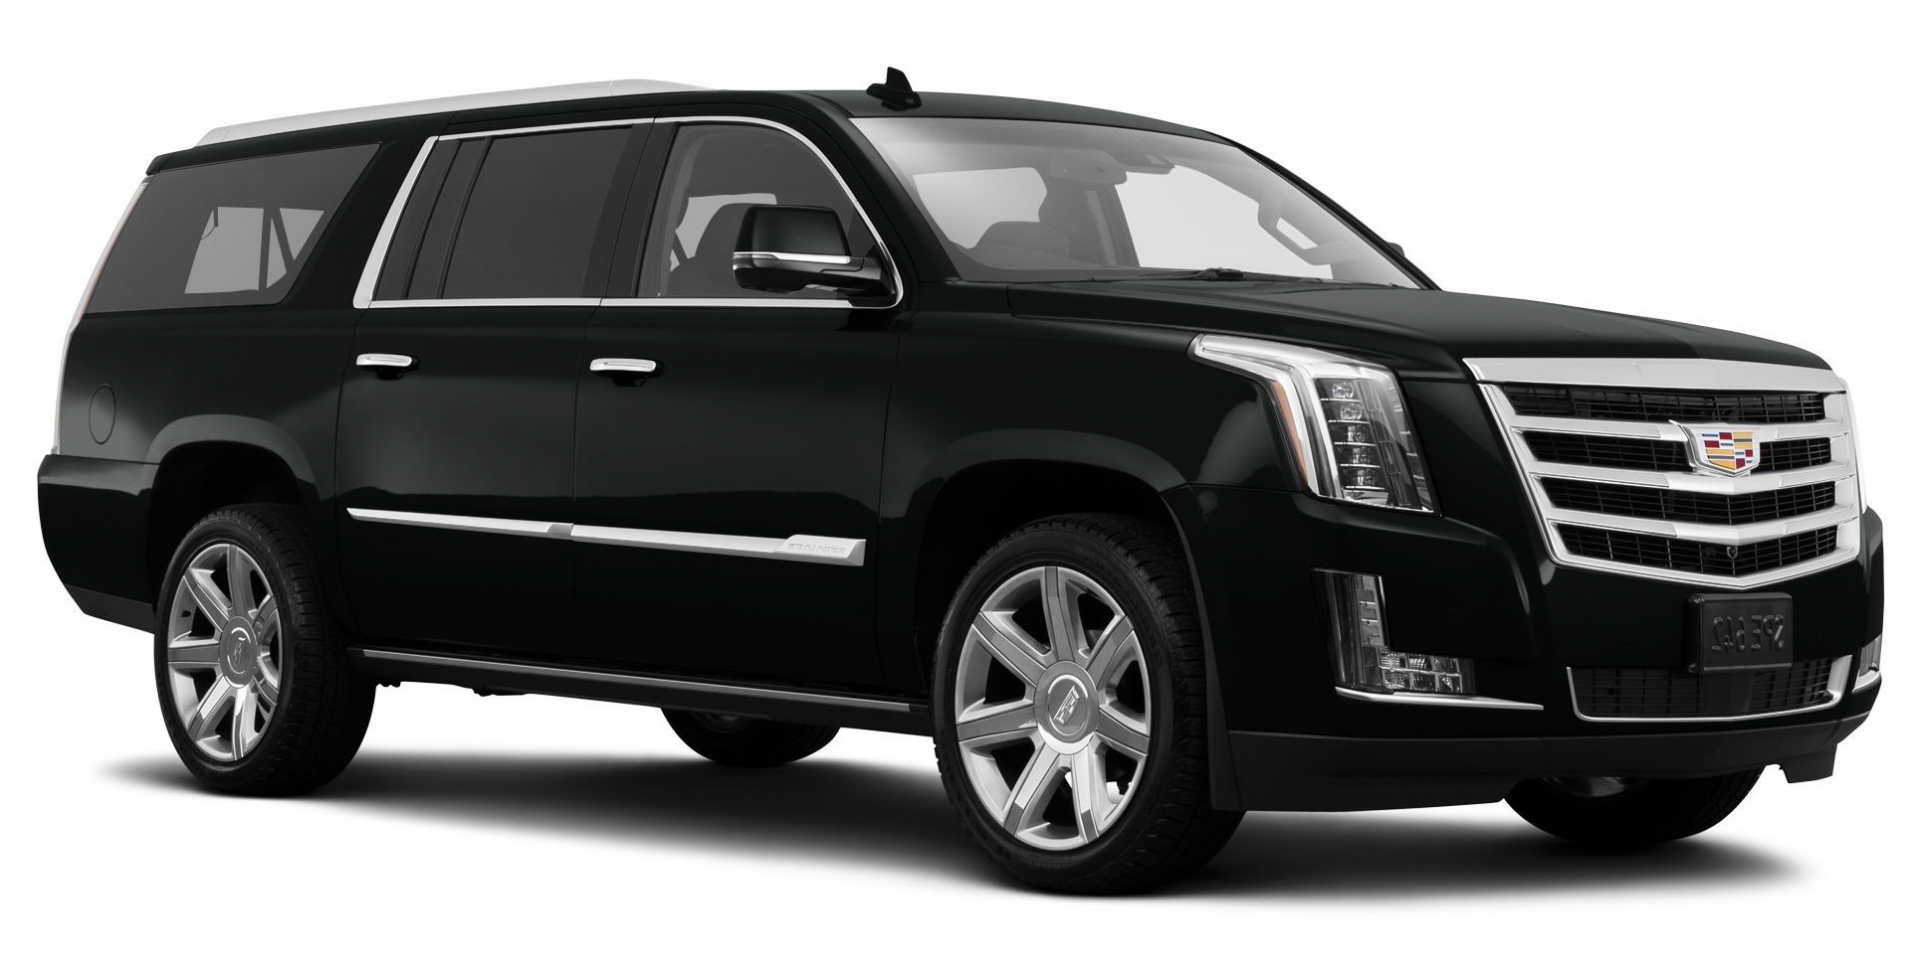 Cadillac Escalade ESV SUV / Seattle, WA   / Hourly (Wedding) $85.00  / Hourly (Prom) $85.00  / Hourly (Anniversary) $85.00  / Hourly (Graduation) $85.00  / Hourly (City Tour) $85.00  / Hourly (Sporting Event) $85.00